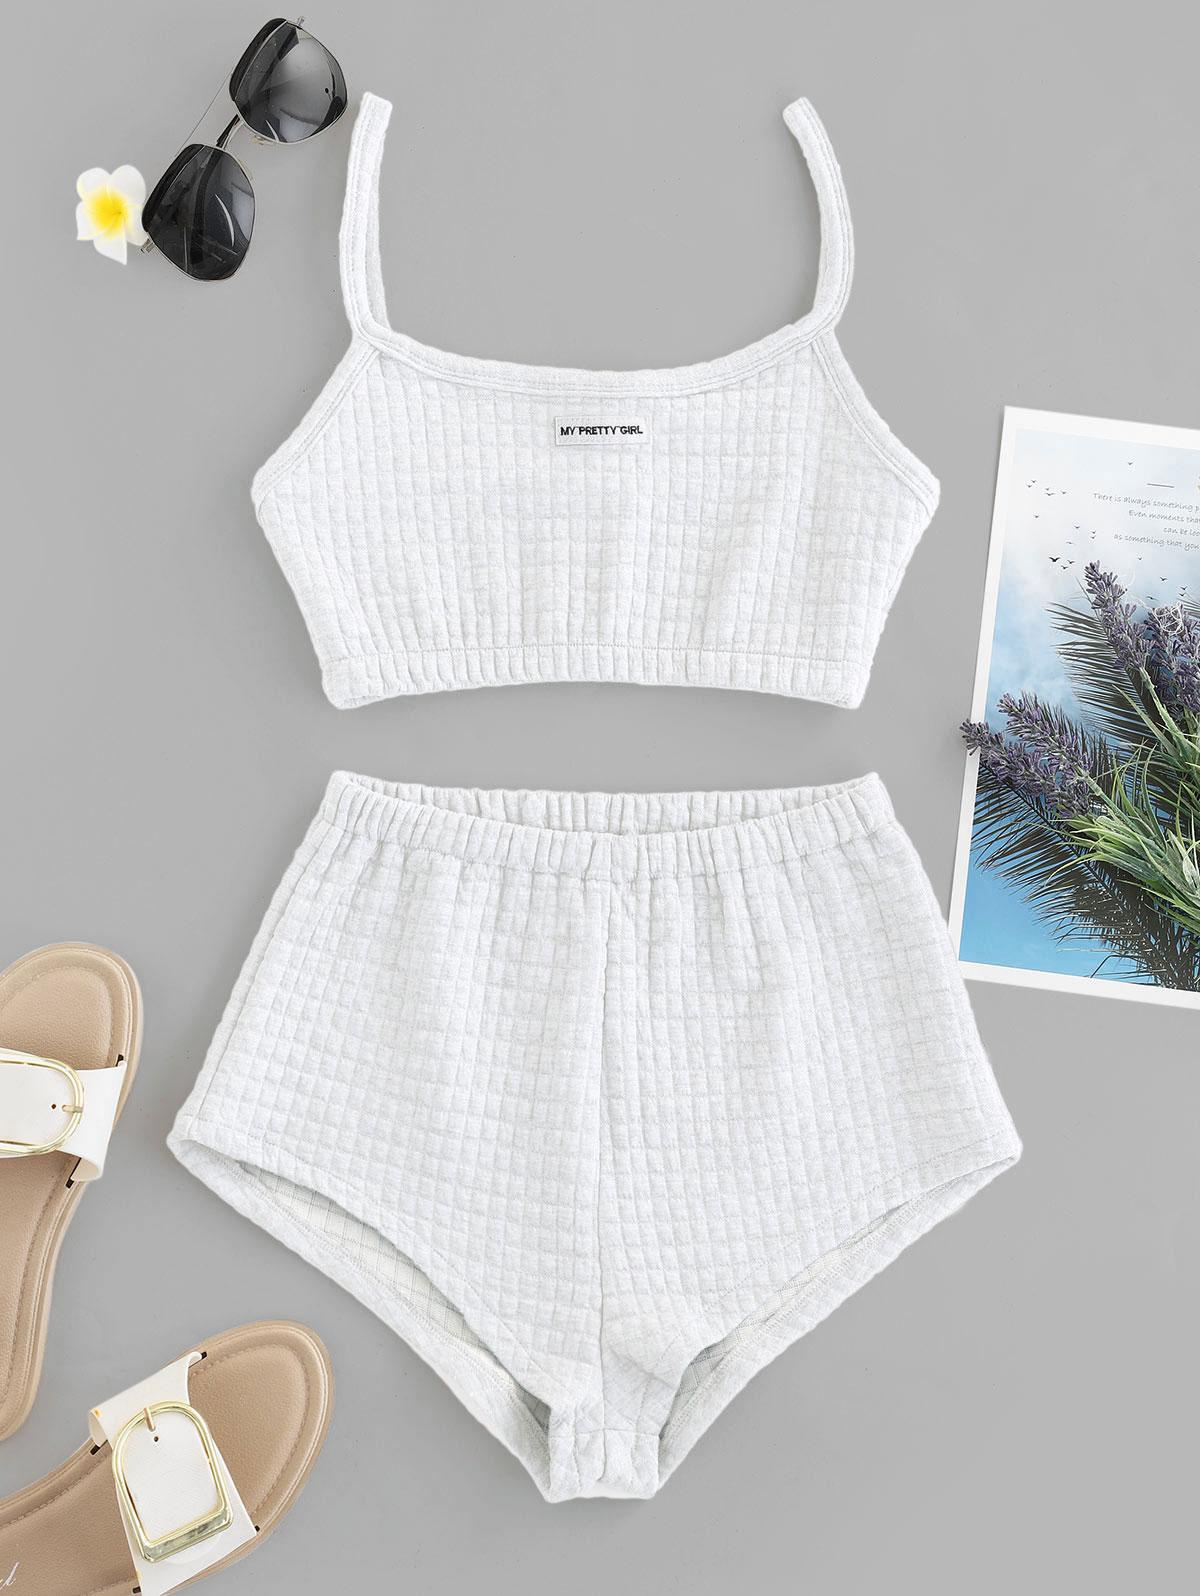 My Pretty Girl Patched Textured Square Two Piece Set thumbnail